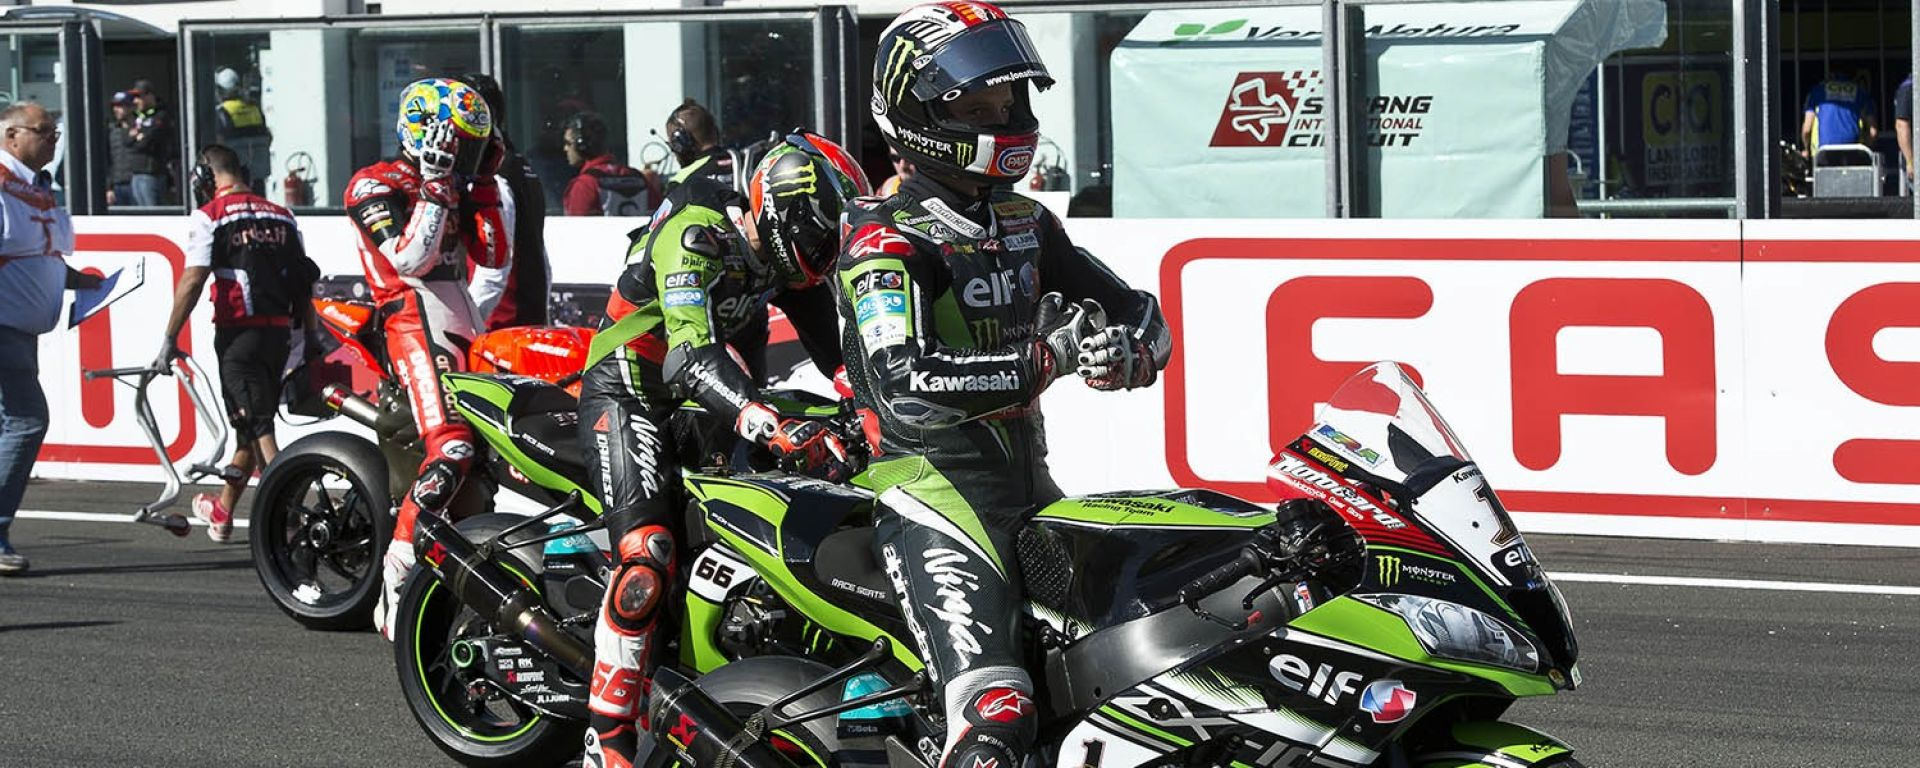 SBK Magny Cours 2017